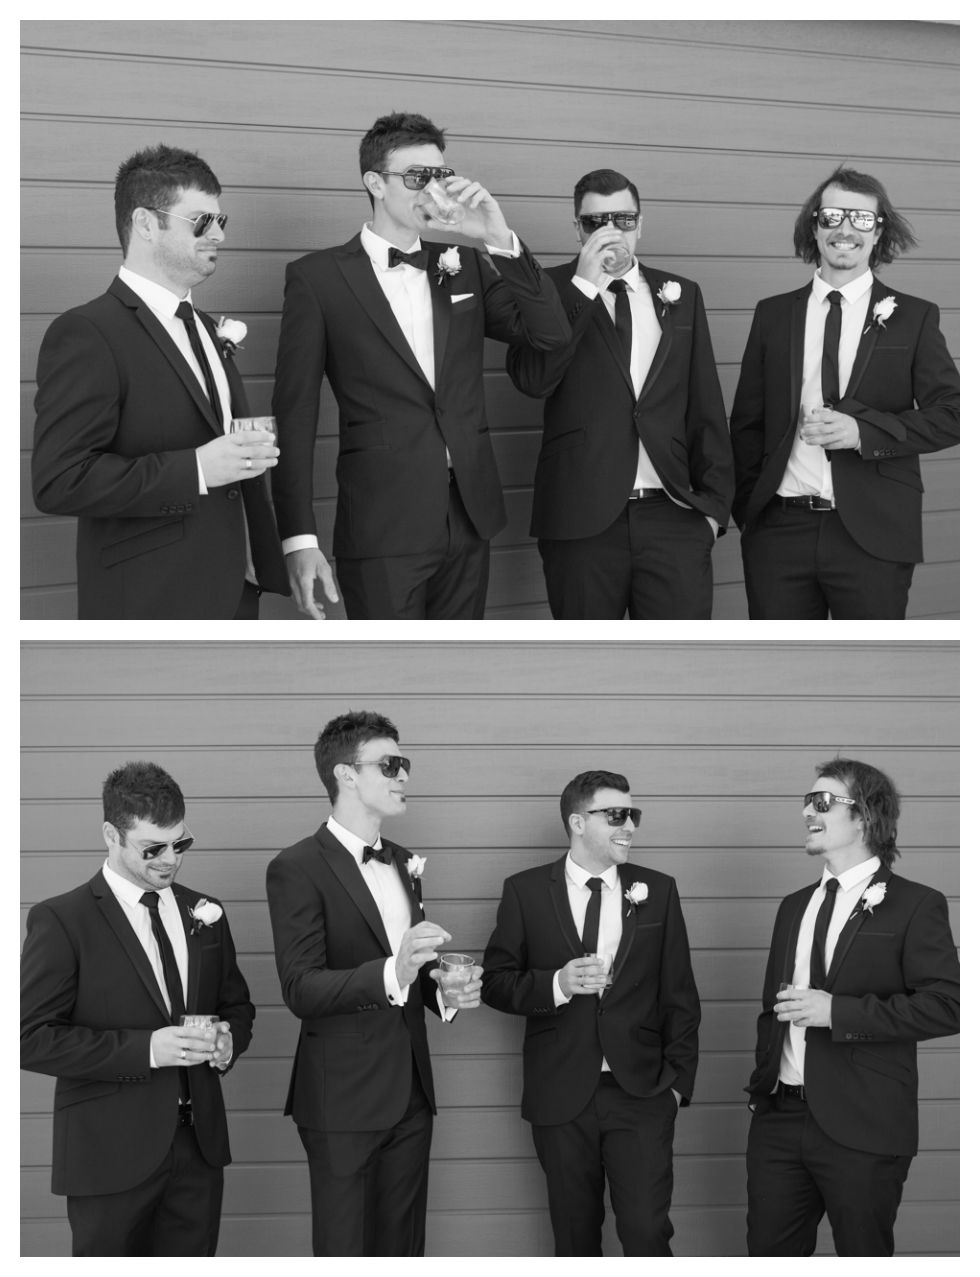 groomsmen, melbourne wedding photographer, milk photography